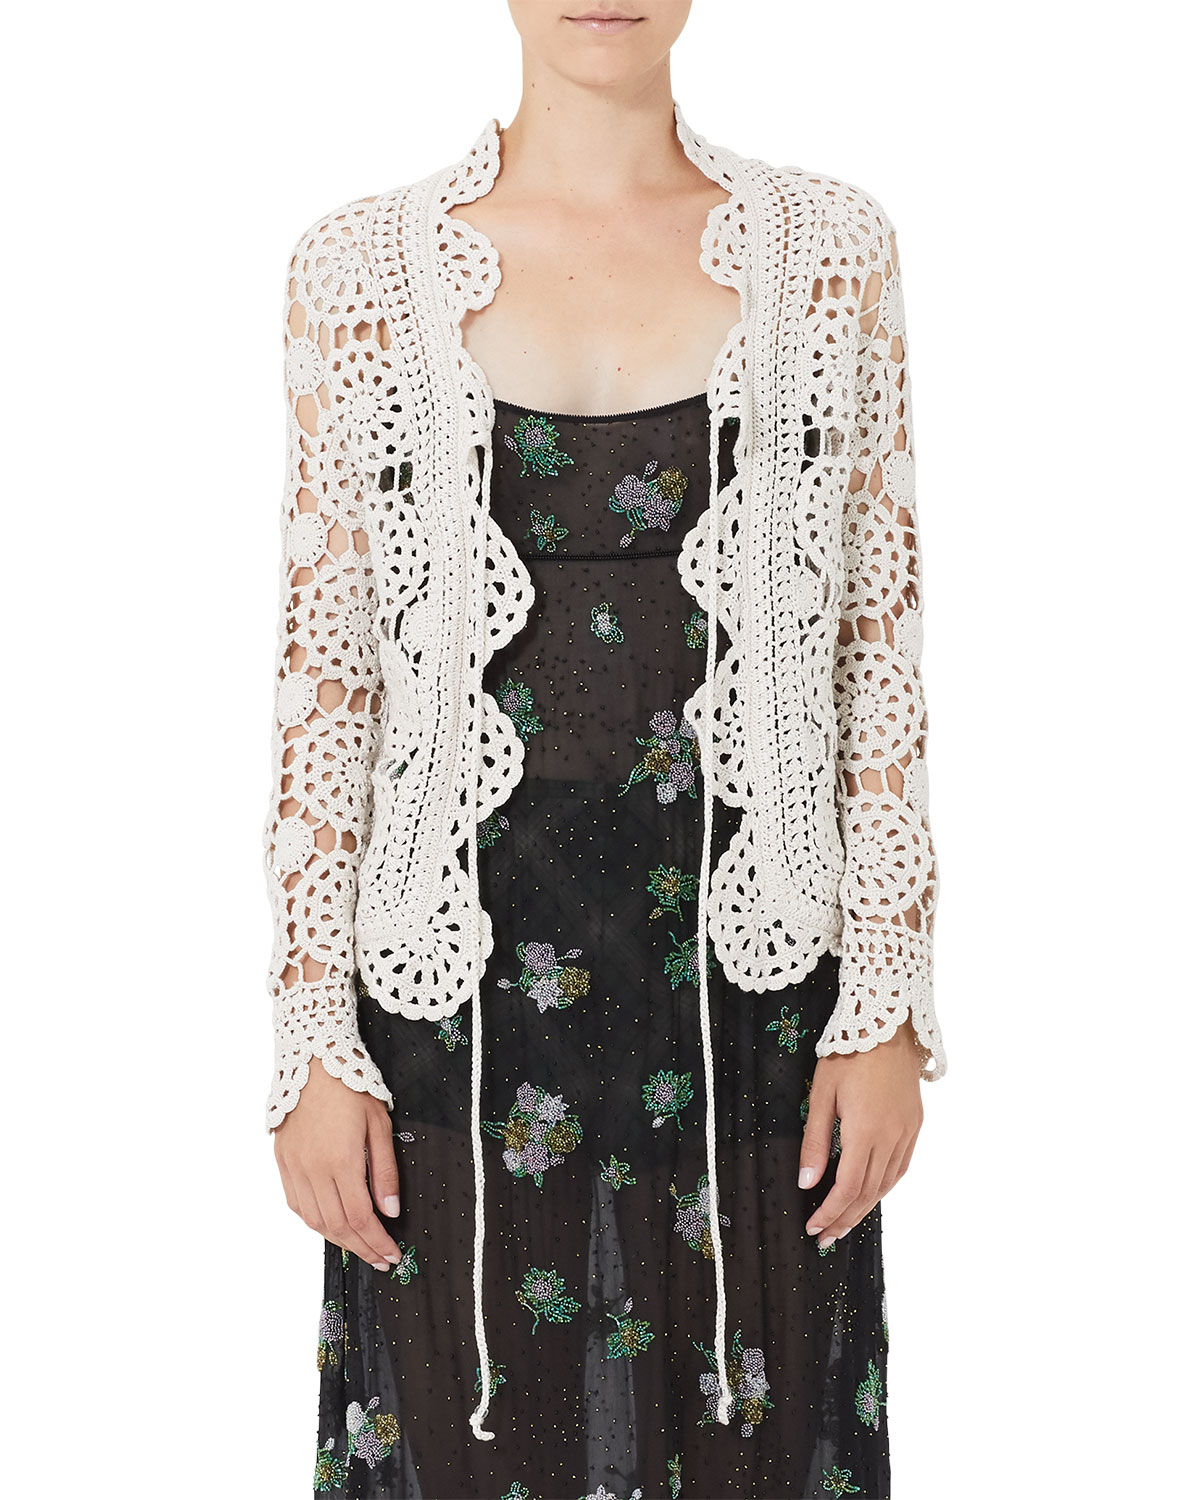 a92ccd56f1ae4 Marc Jacobs Tie-Front Cotton Crochet Cardigan